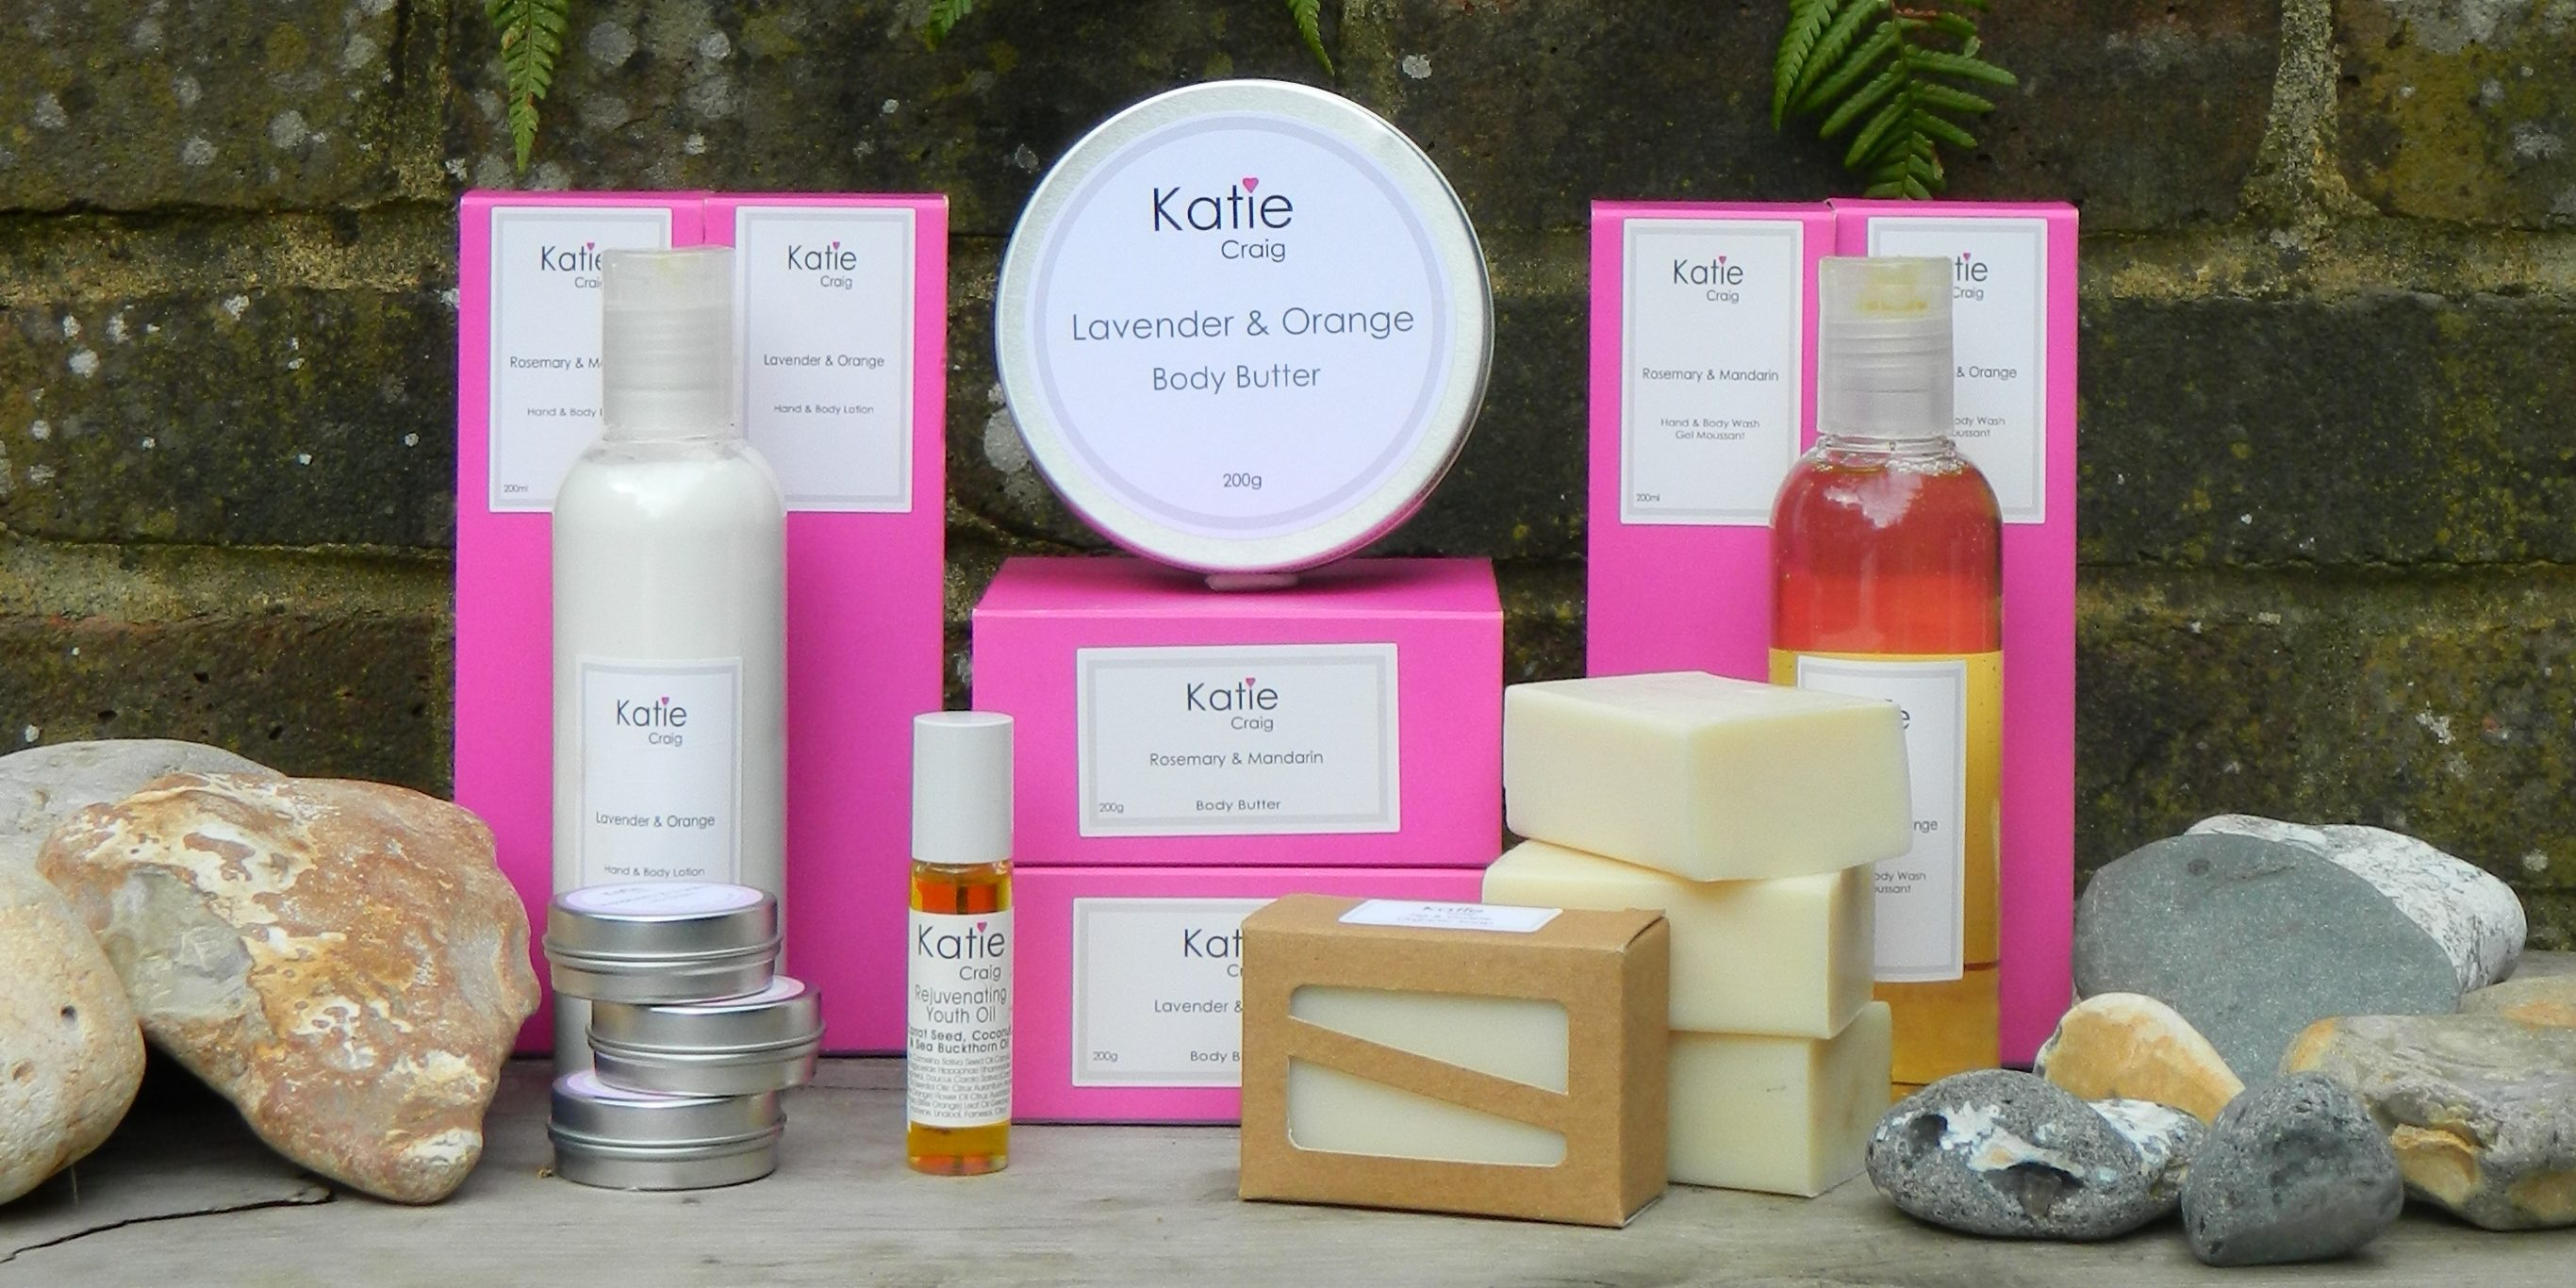 Organic Beauty products from Katie Craig